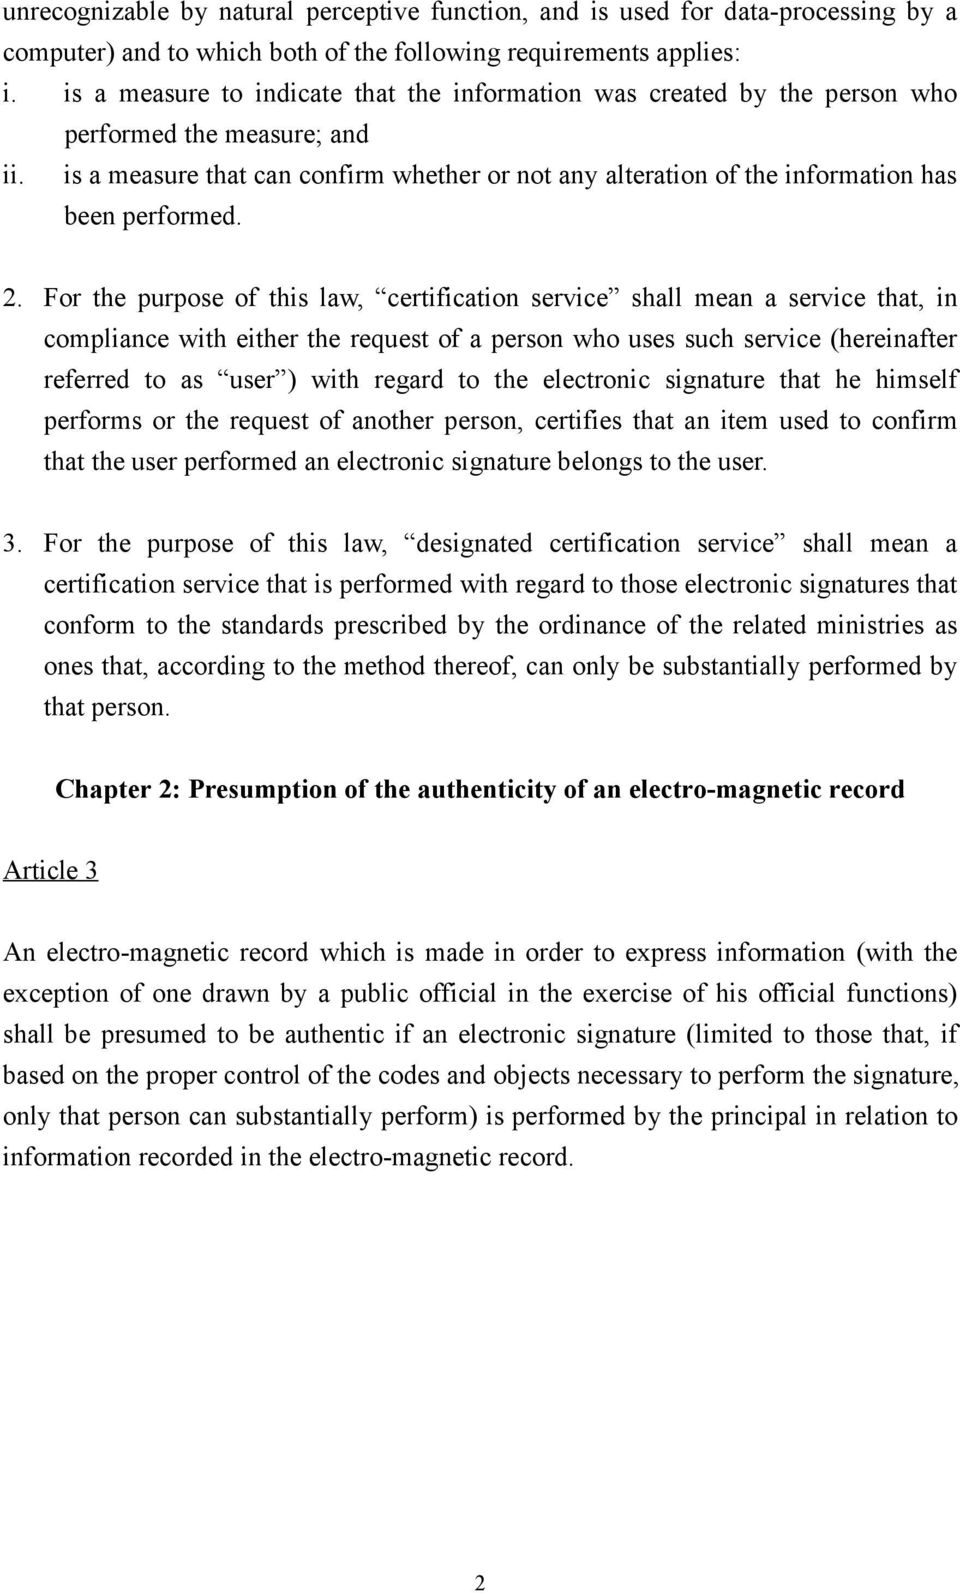 is a measure that can confirm whether or not any alteration of the information has been performed. 2.